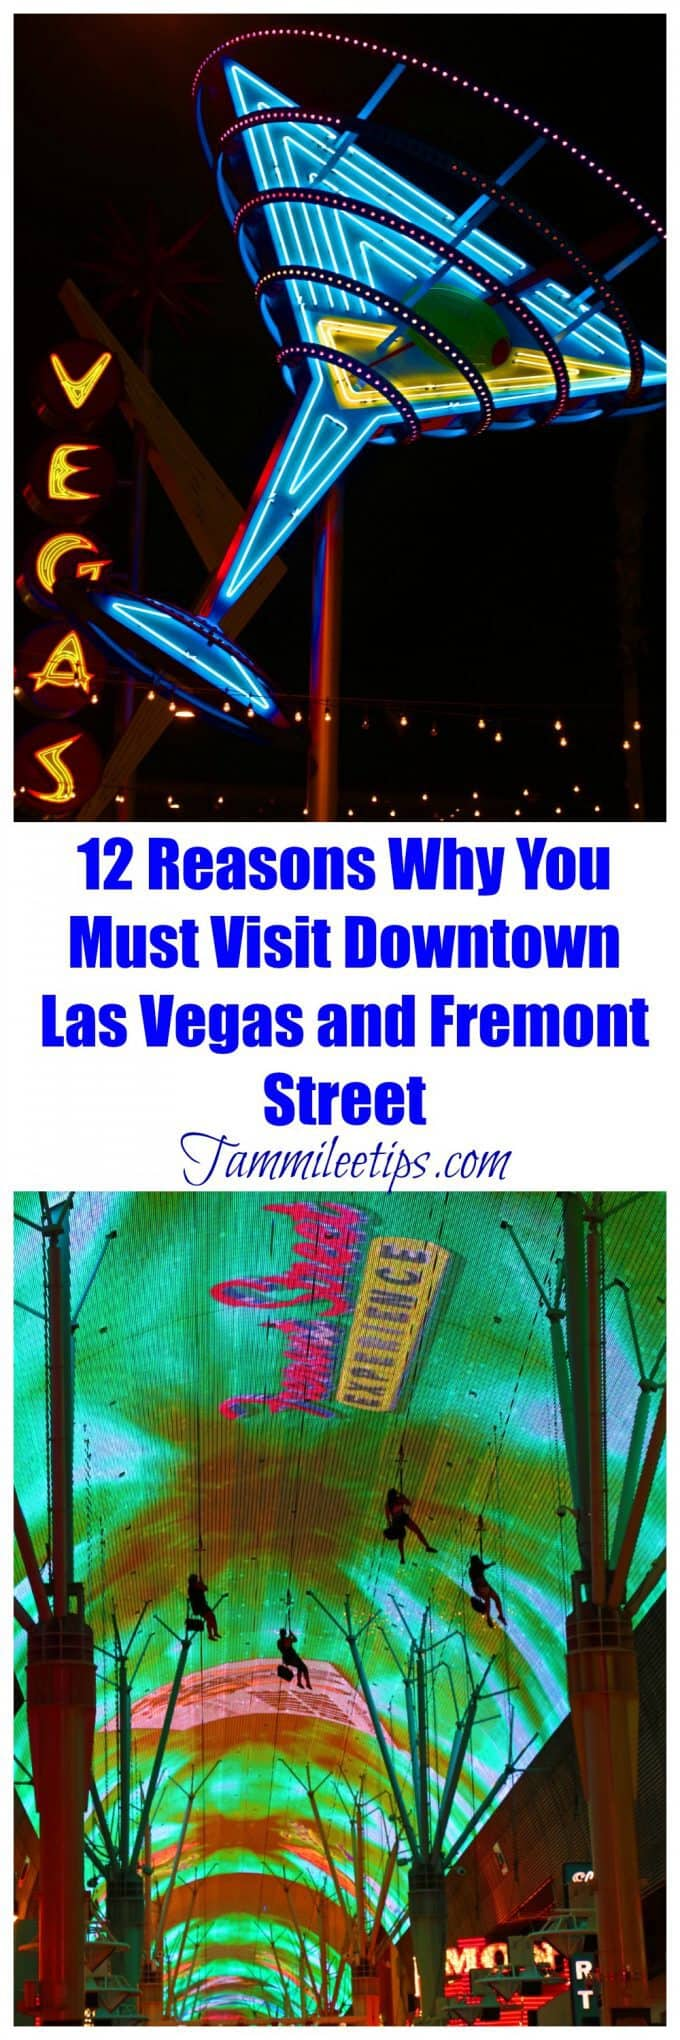 12 reasons why you must visit Downtown Las Vegas & Fremont Street